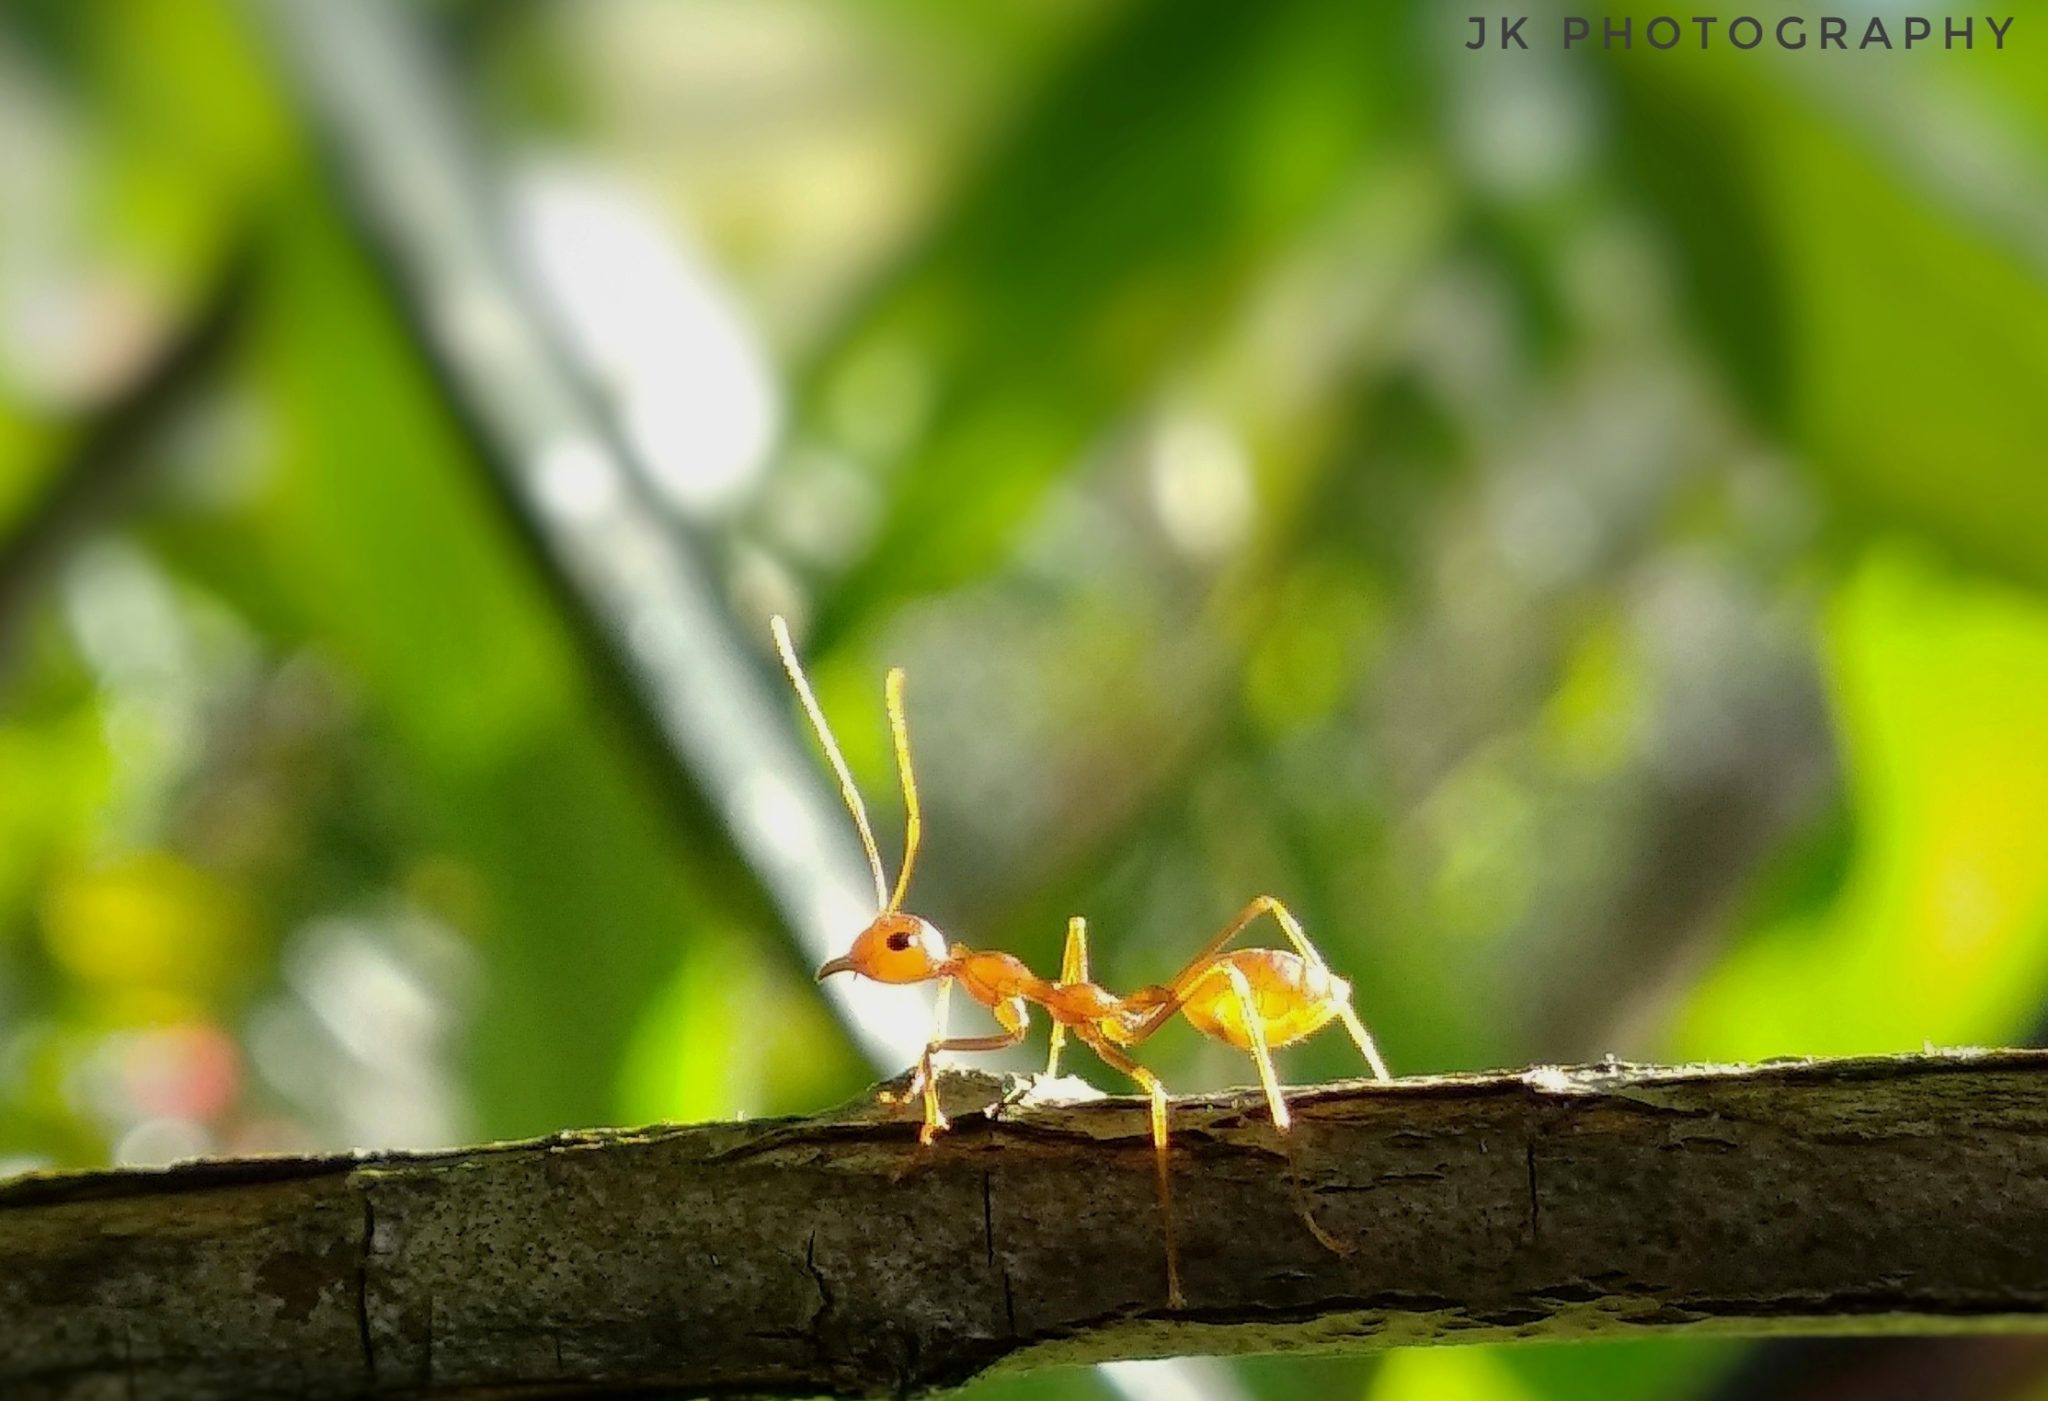 Weaver ants (Oecophylla) Shoot On Mi A1 Stock Camera It was a shining day and I noticed an interesting range of view that sunrays were passing through the body of an ant which was sitting in the sunshine on the branch of a tree and was passively enjoying the sunbath. The vision seems to be the x-ray of its body.